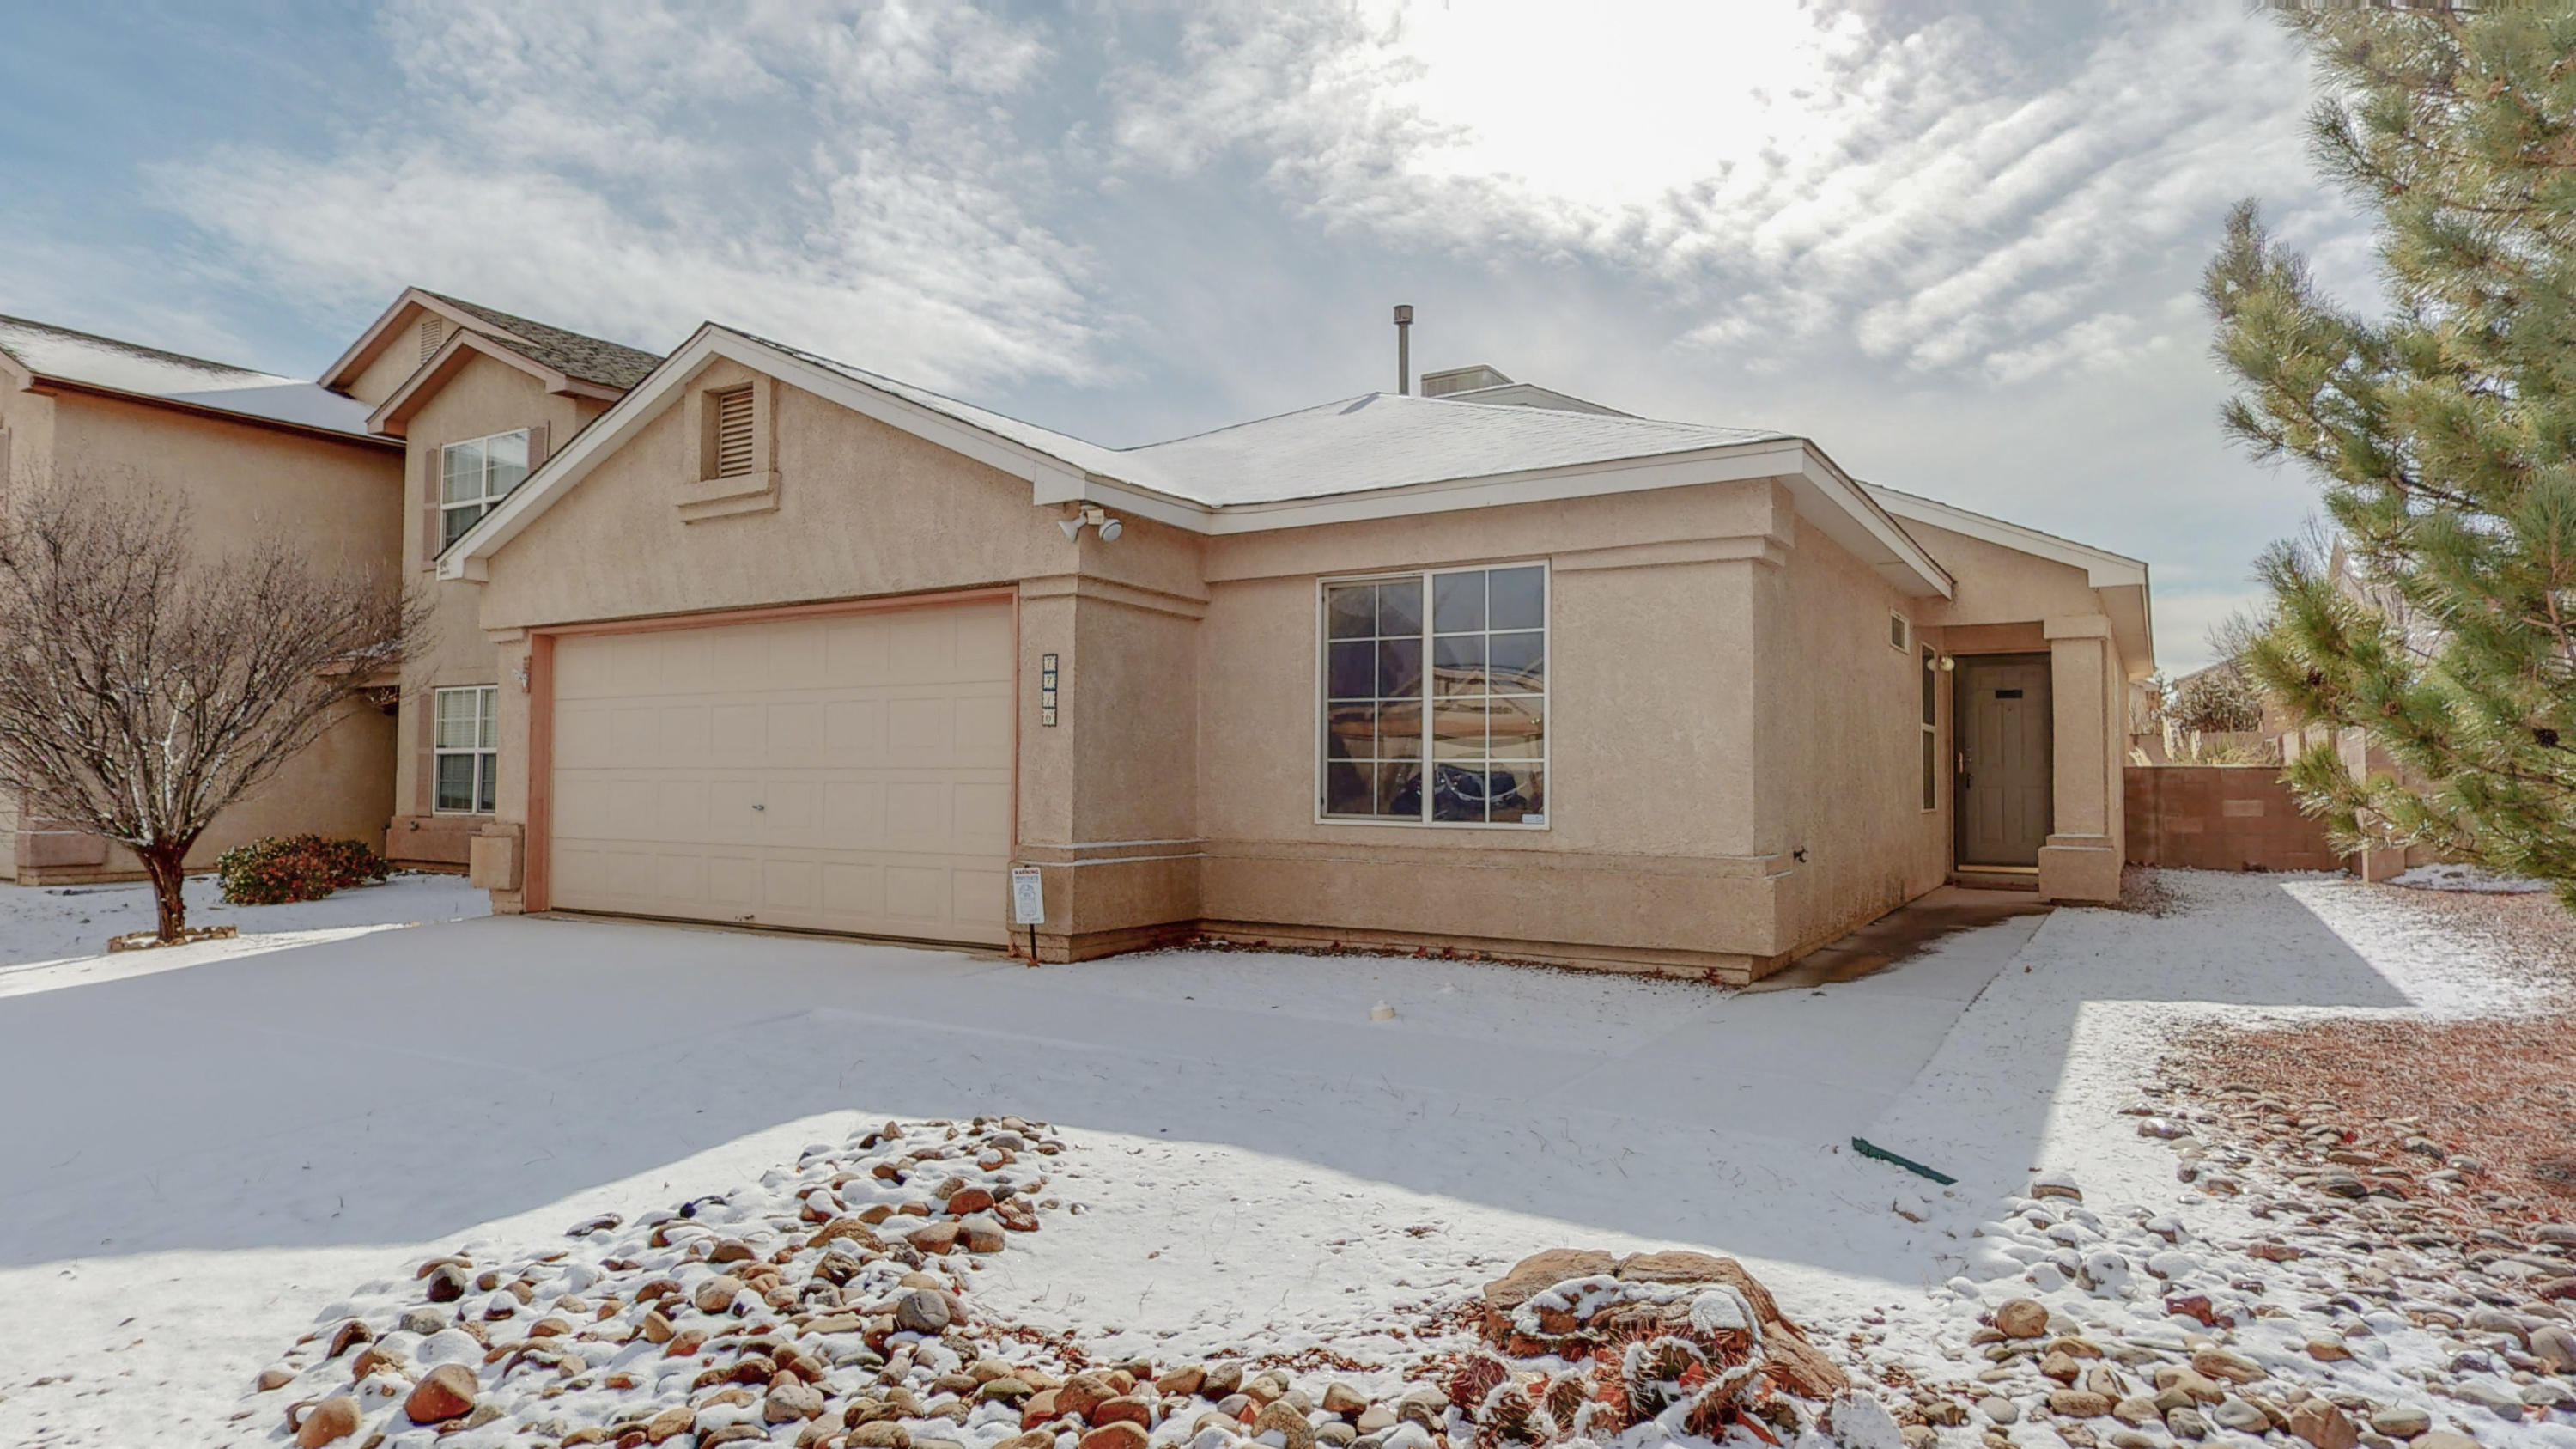 Open House Saturday 1/30 from 1- 3 pm! Located in desirable Ventana Ranch! Soaring Ceilings and lots of Natural light welcome you as you enter your new home! The open concept floor plan is perfect for making memories and gathering with friends and Family! Cozy up the the gas log fireplace while the snow melts away outside. Enjoy cooking your favorite meals in the open kitchen while you gaze out the Bay windows of the breakfast nook.  Updates include Fresh paint,, new flooring and new blinds. Relax after a long day on the spacious Back patio and enjoy the low maintenance Landscaping. Take a virtual Walkthrough tour today or schedule a private showing starting Thursday ! Hurry, this on won't last long!!! All offers will be reviewed on Sunday 1/31 at 6 pm.